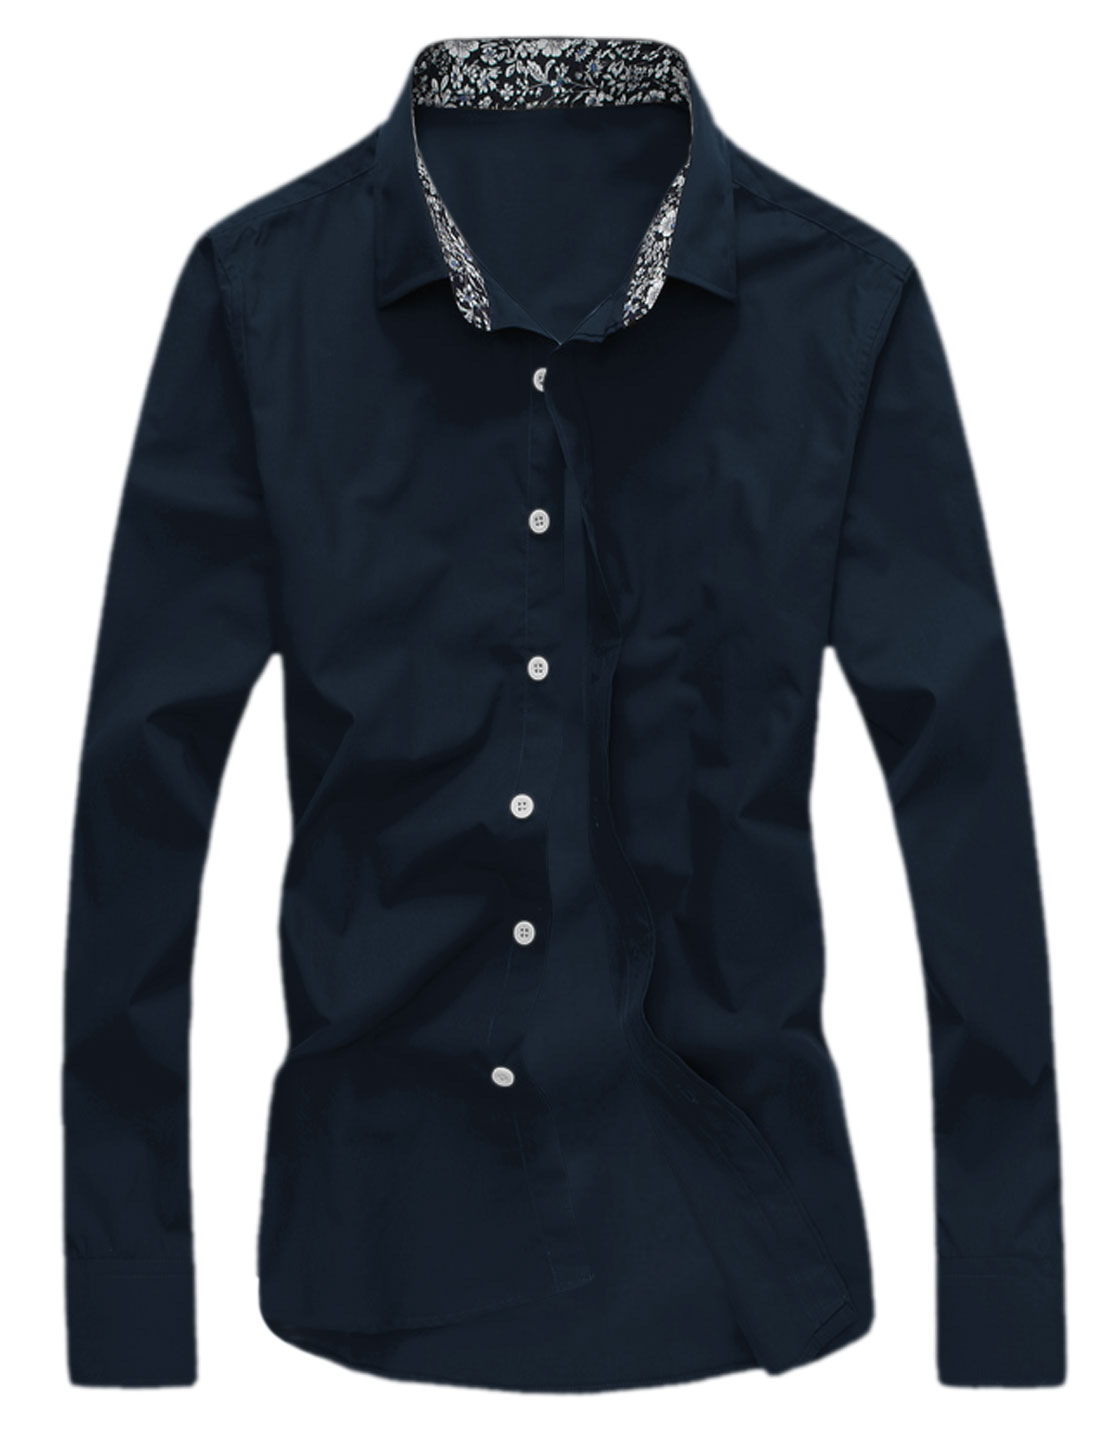 Man Point Collar Round Hem Button Down Shirts Navy Blue M